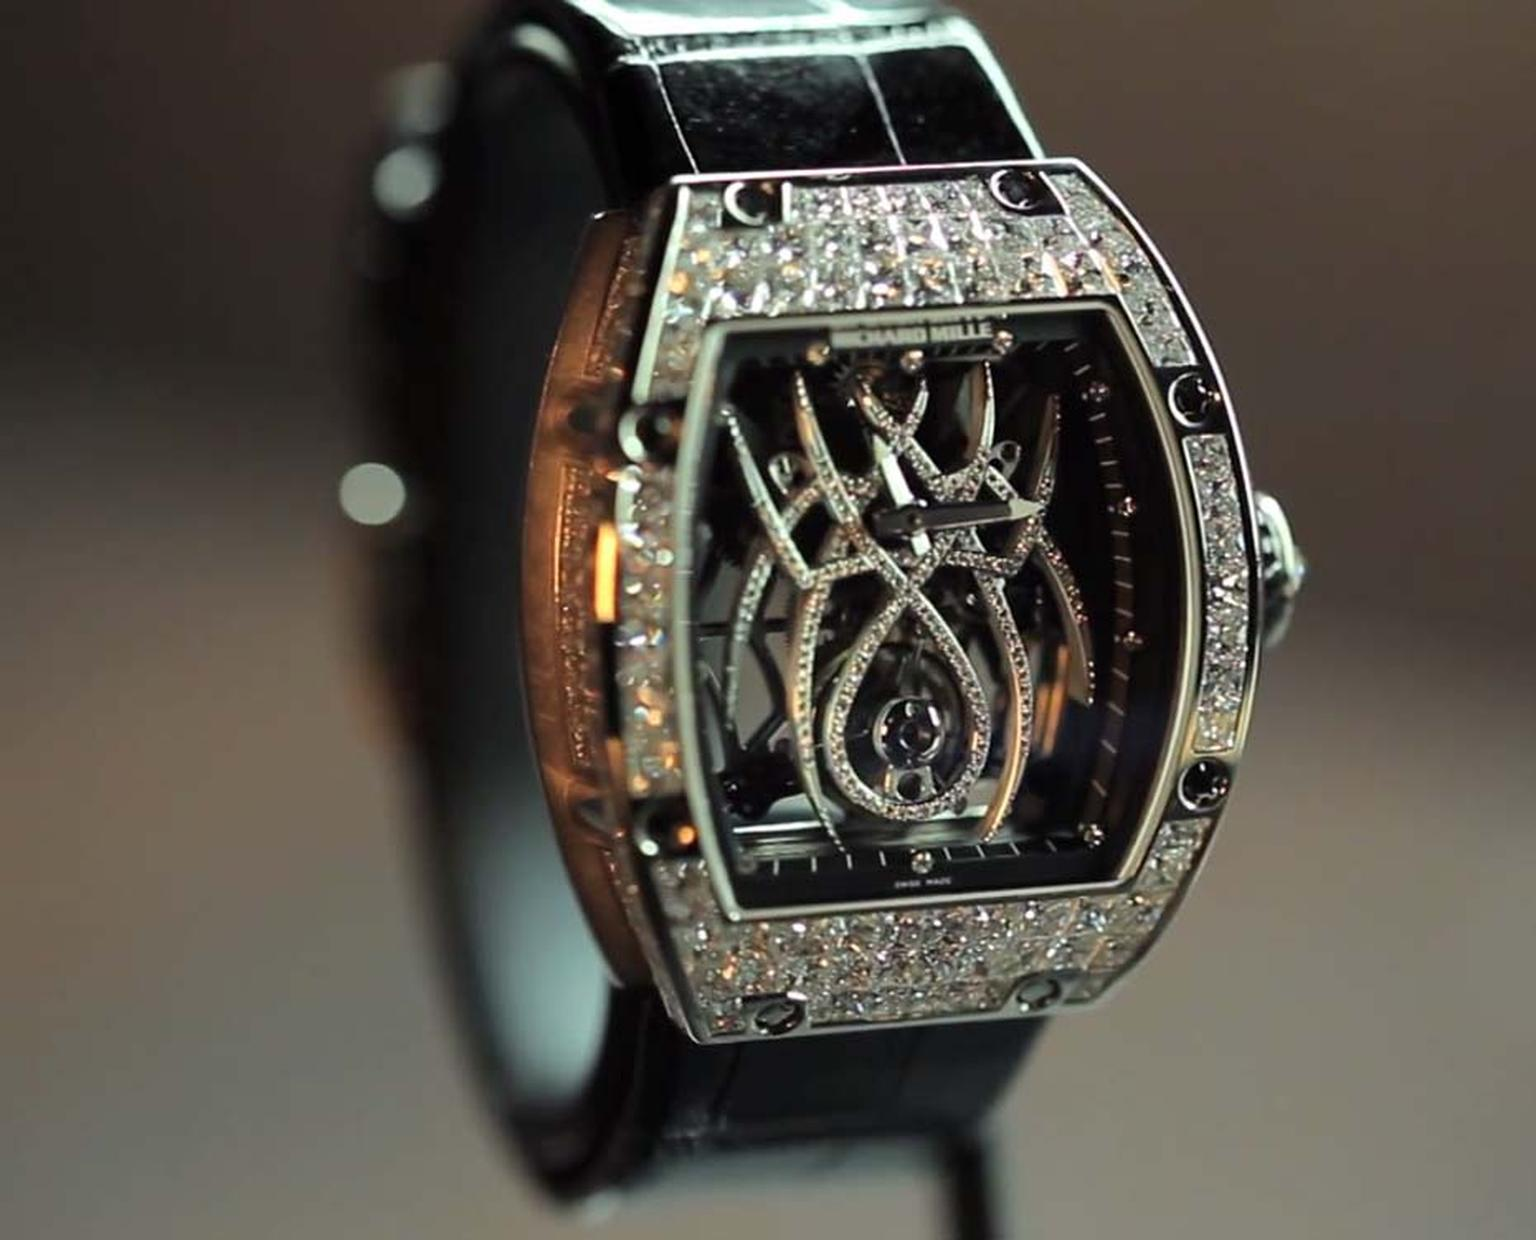 The Richard Mille Tourbillon Natalie Portman RM 19-01 featuring a diamond-set spider on the dial